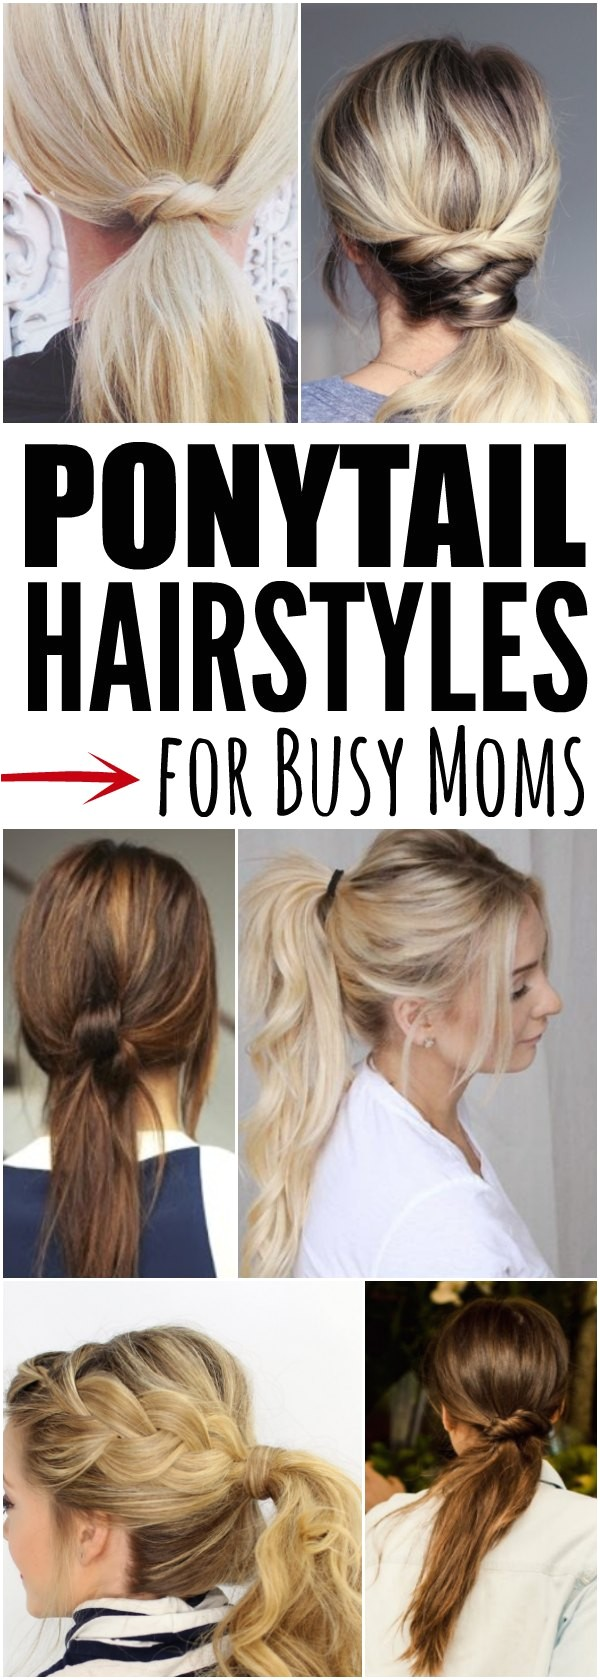 ponytail hairstyles for busy moms